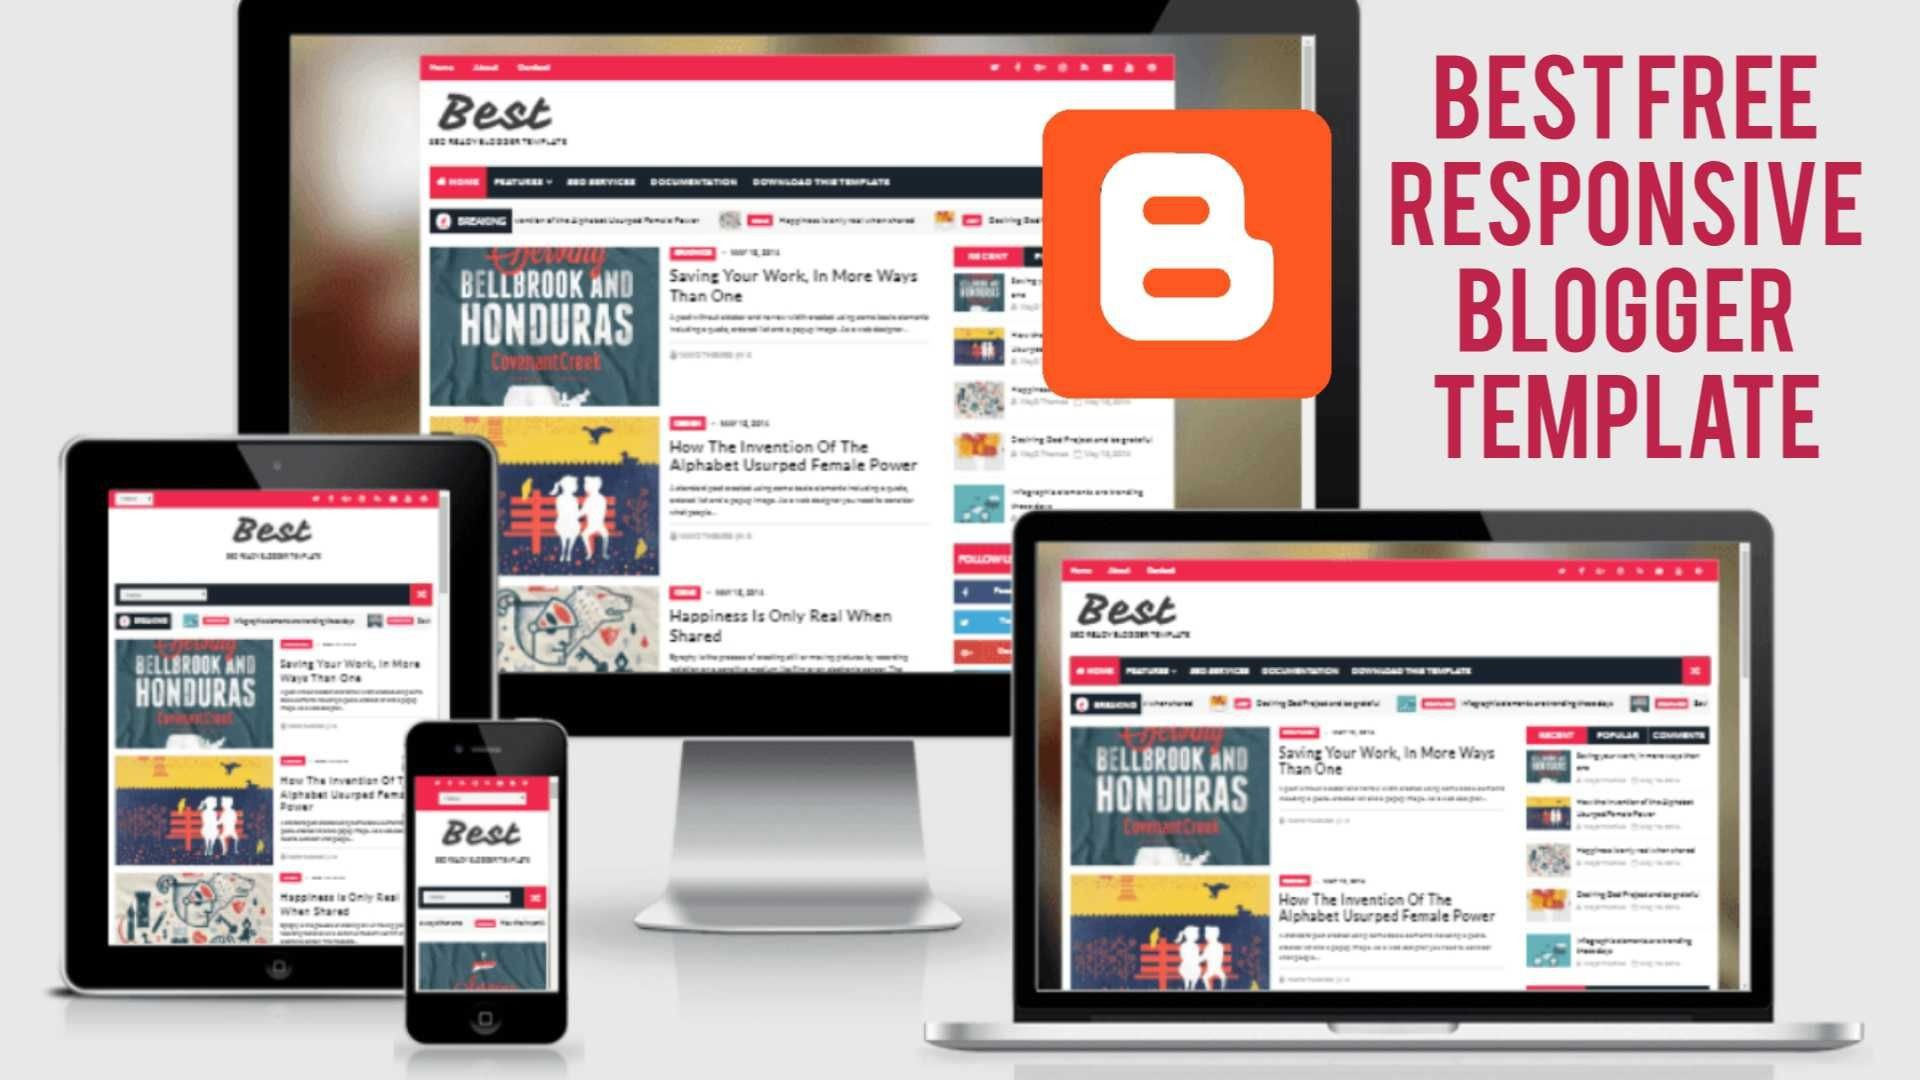 002 Dreaded Free Responsive Blogger Template Highest Clarity  2019 Top Mobile Friendly1920